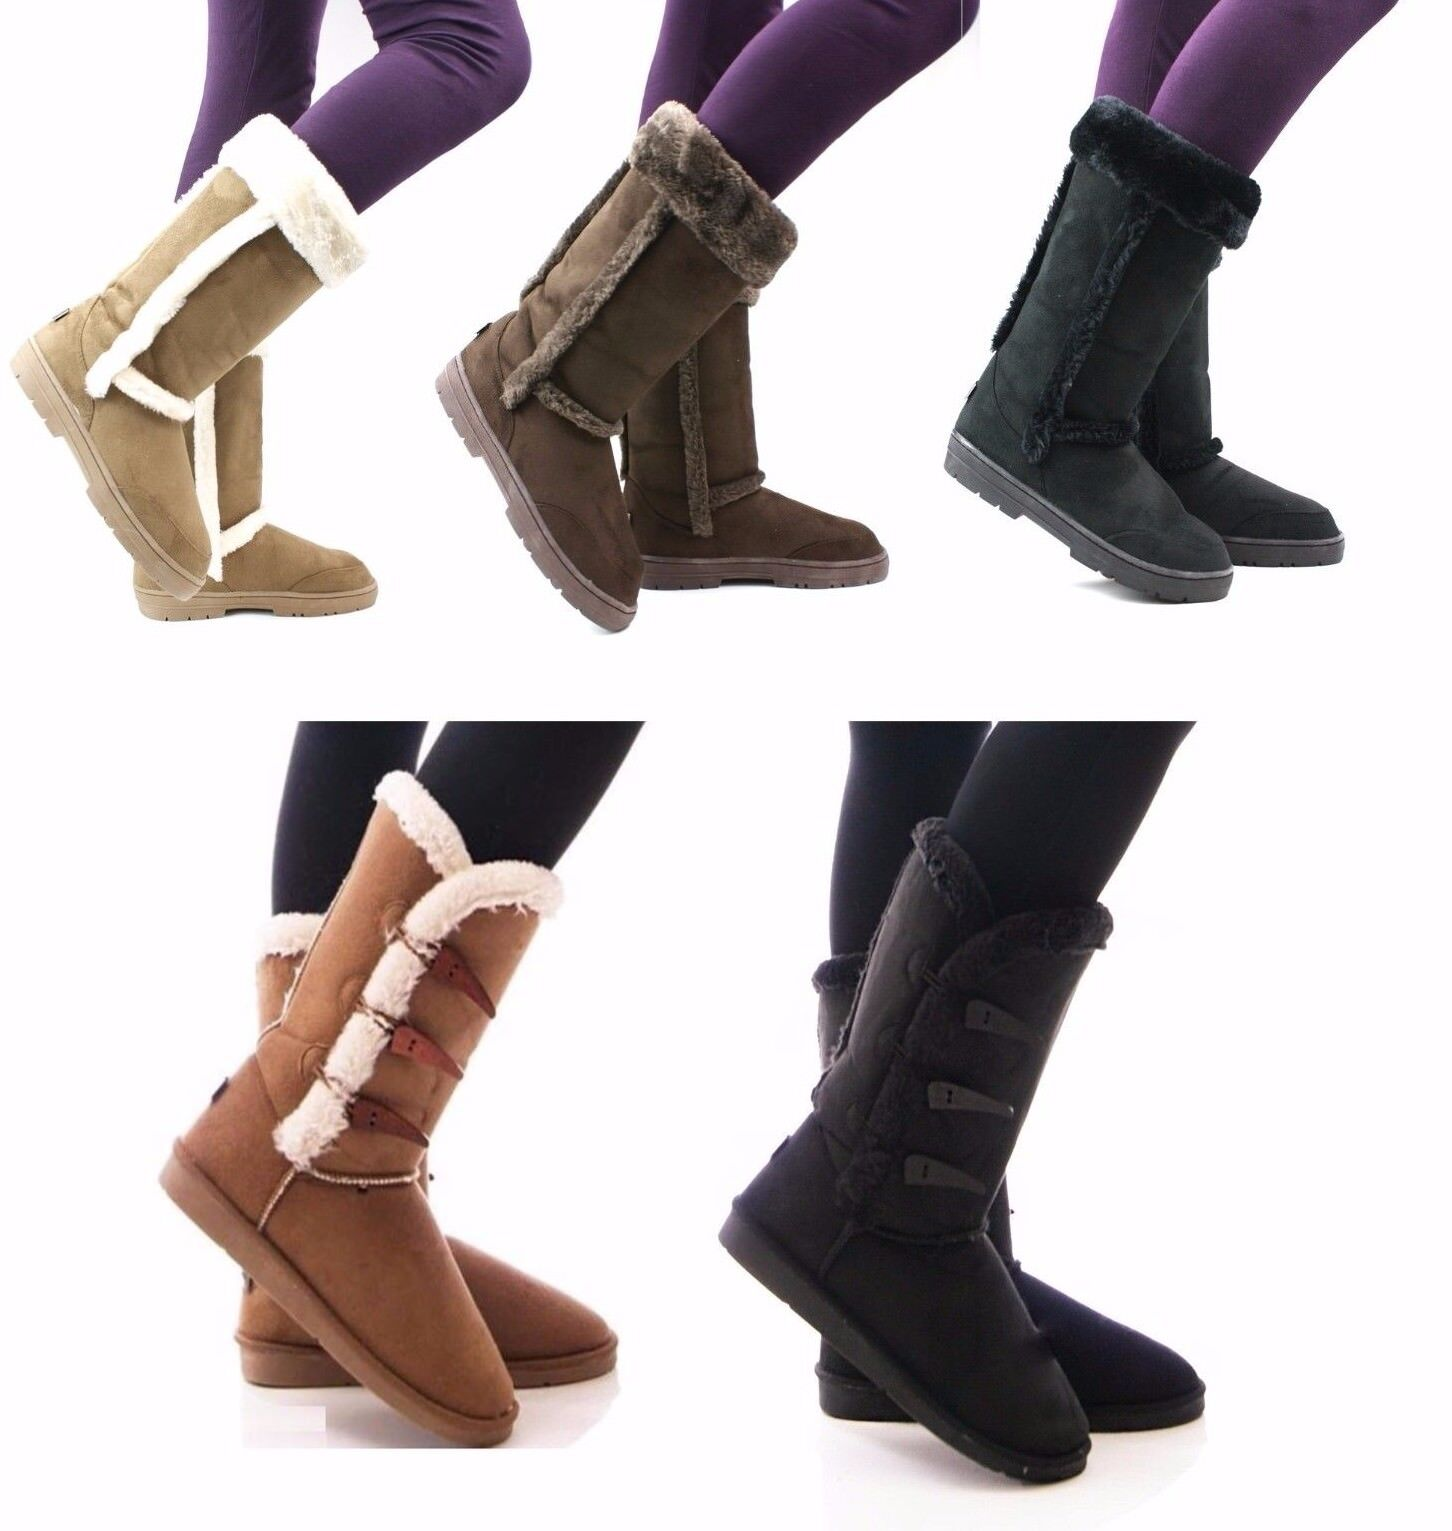 WOMENS LADIES FASHION WINTER SNOW COMFY CASUAL MID CALF FLEECE LINED BOOTS SIZE